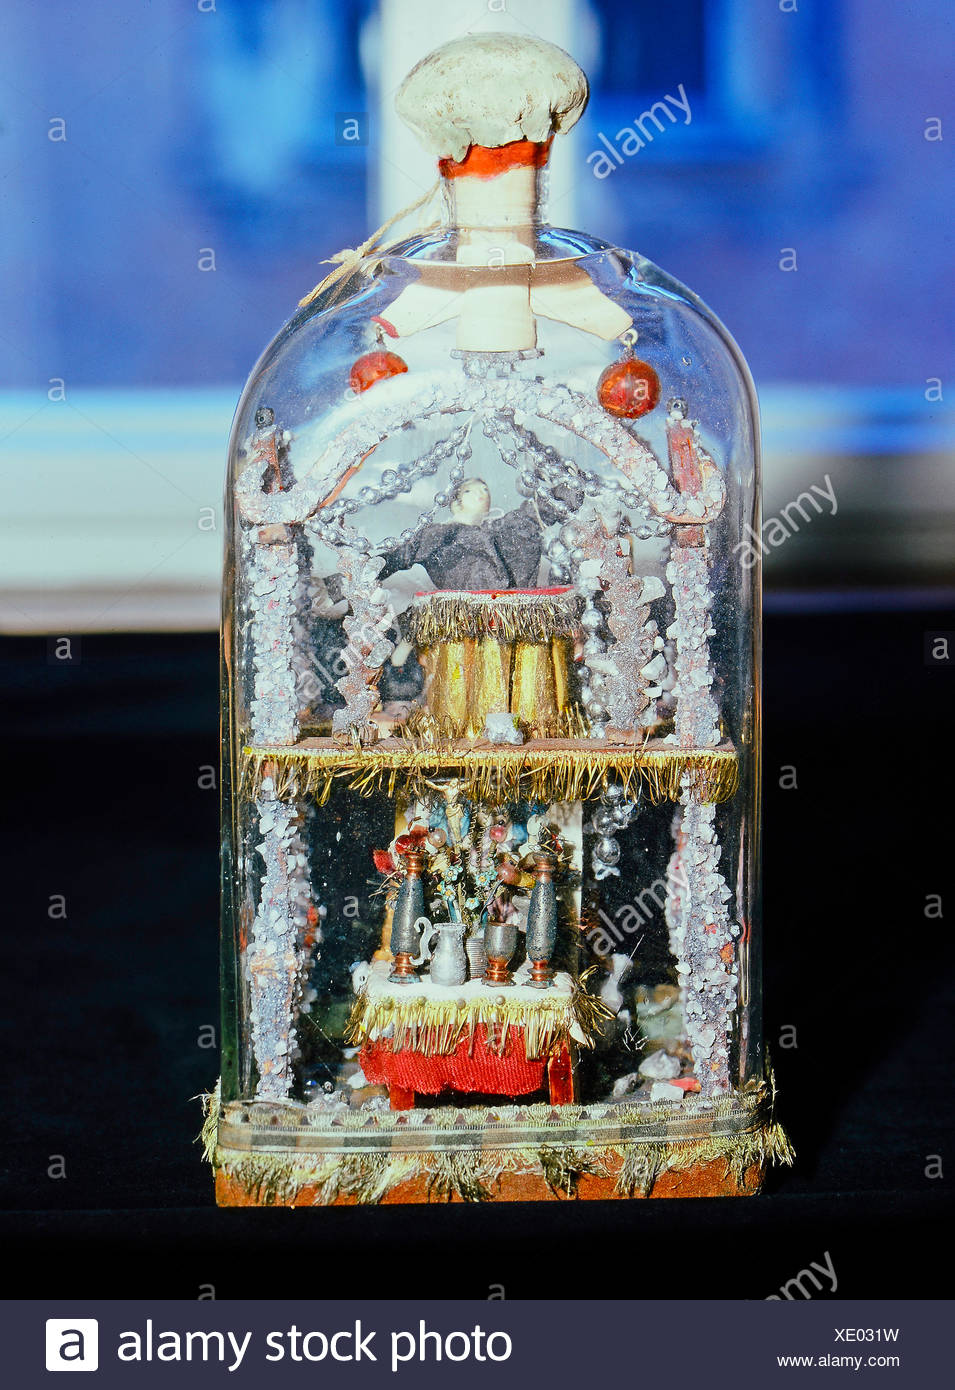 fine arts, folk art, impossible bottle with altar and preacher, glass, Swabia, 19th century, Werdenfels museum, Garmisch-Partenkirchen, Artist's Copyright has not to be cleared - Stock Image